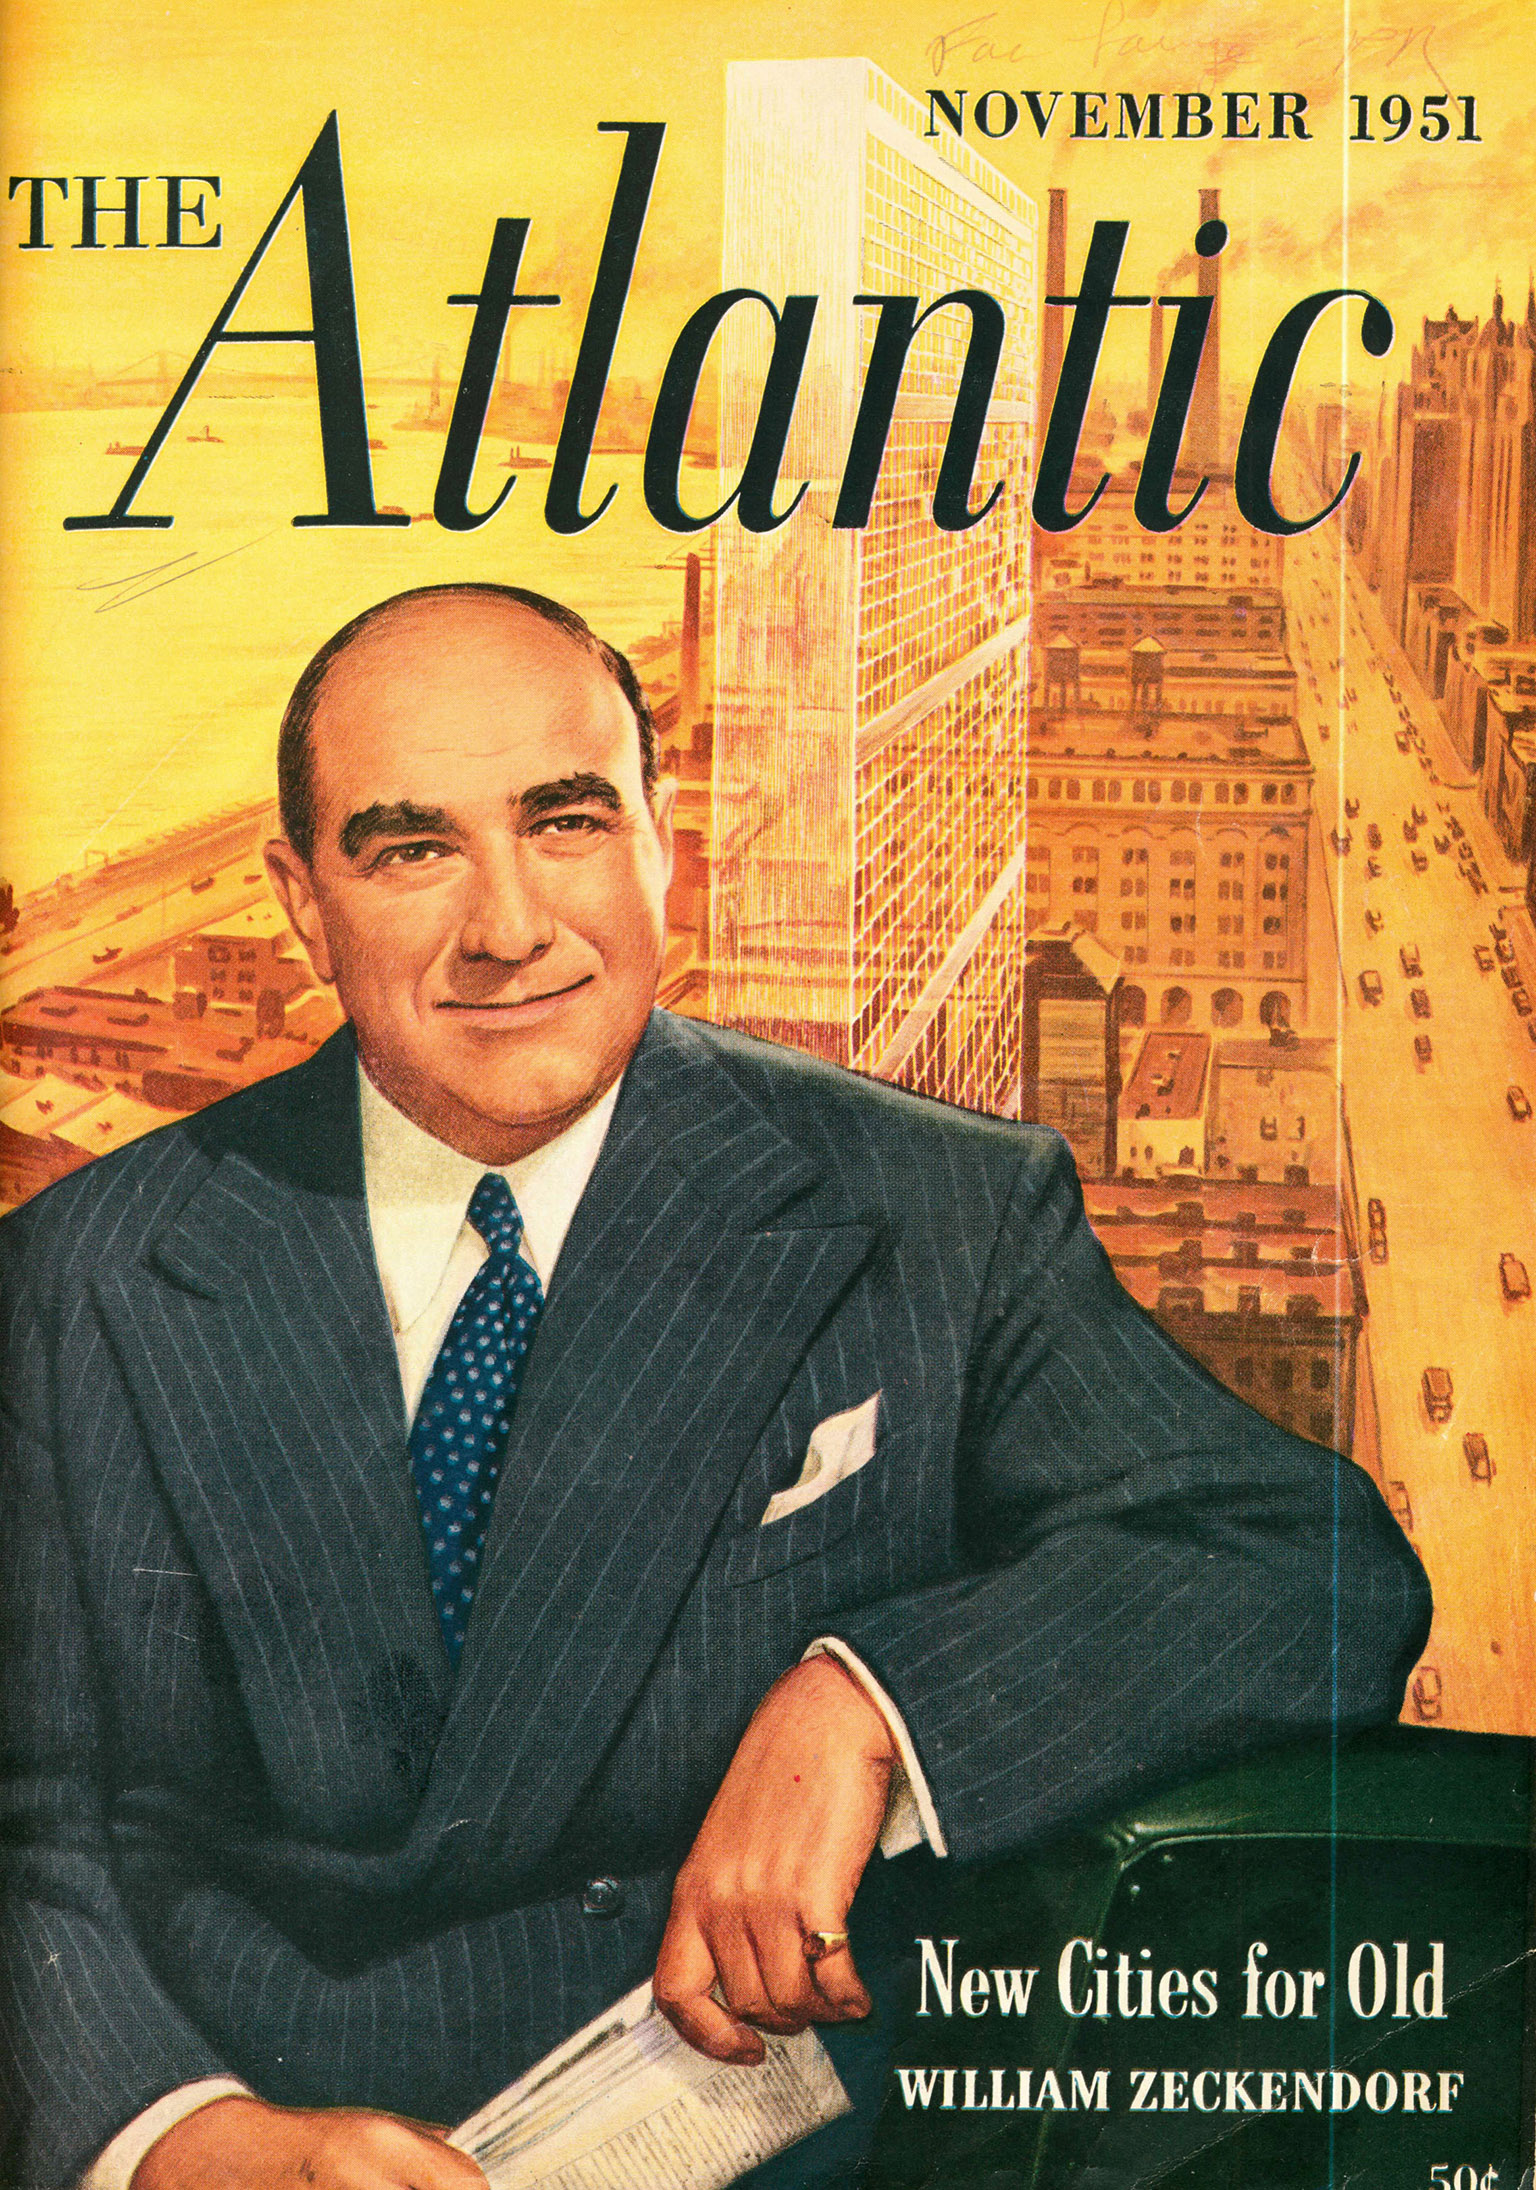 William Zeckendorf on the cover of Atlantic Monthly (November 1951).